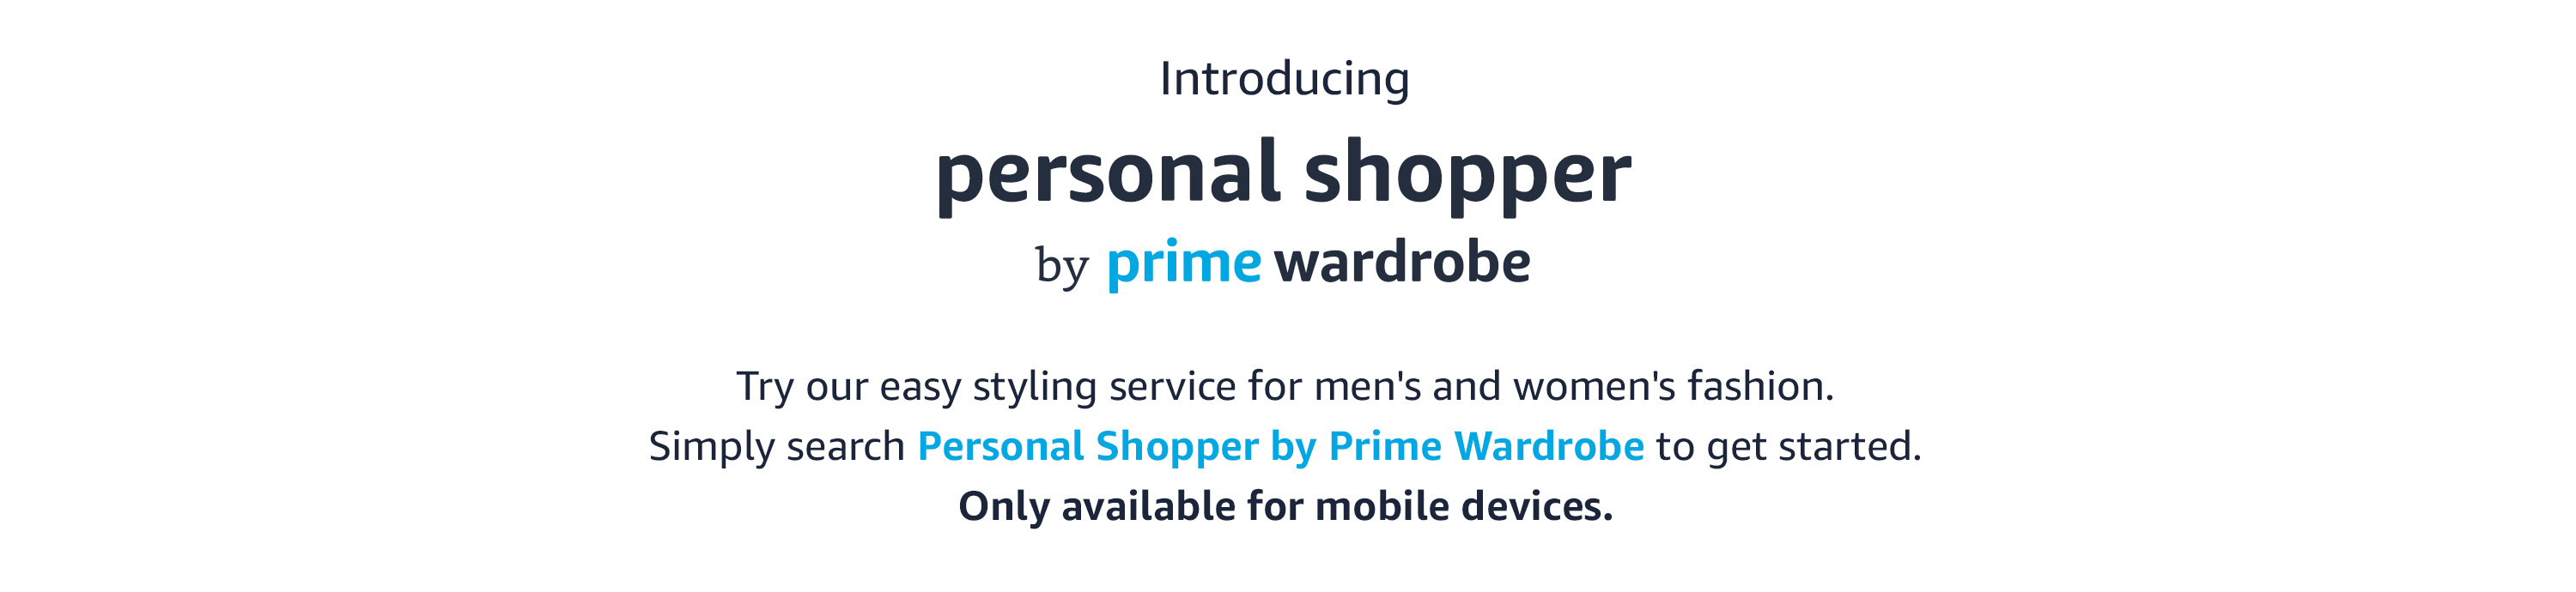 Introducing Personal Shopper by prime wardrobe